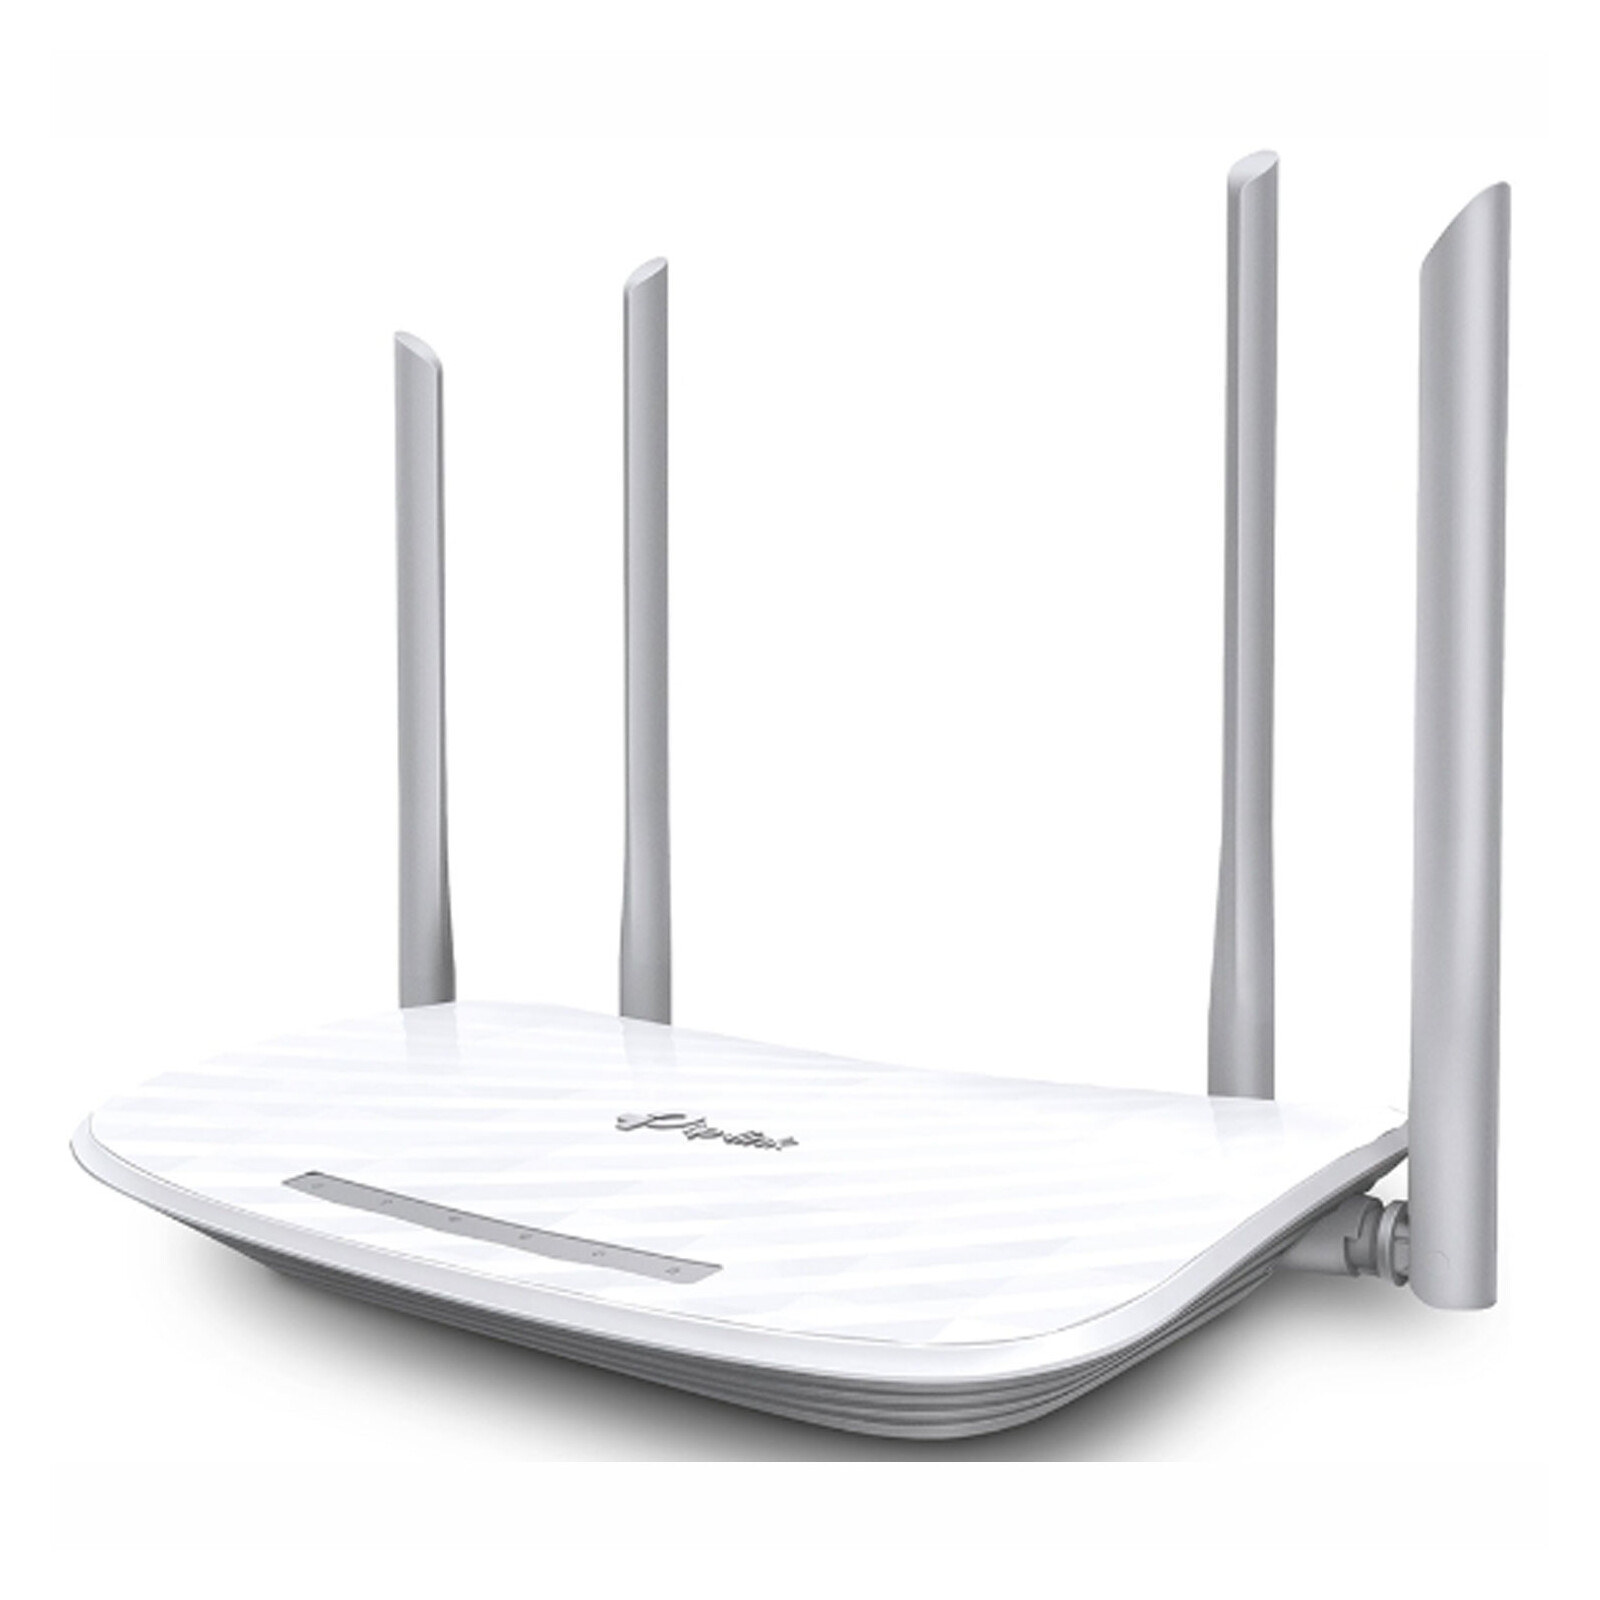 TP-Link AC1200 Wireless Dual Band Router